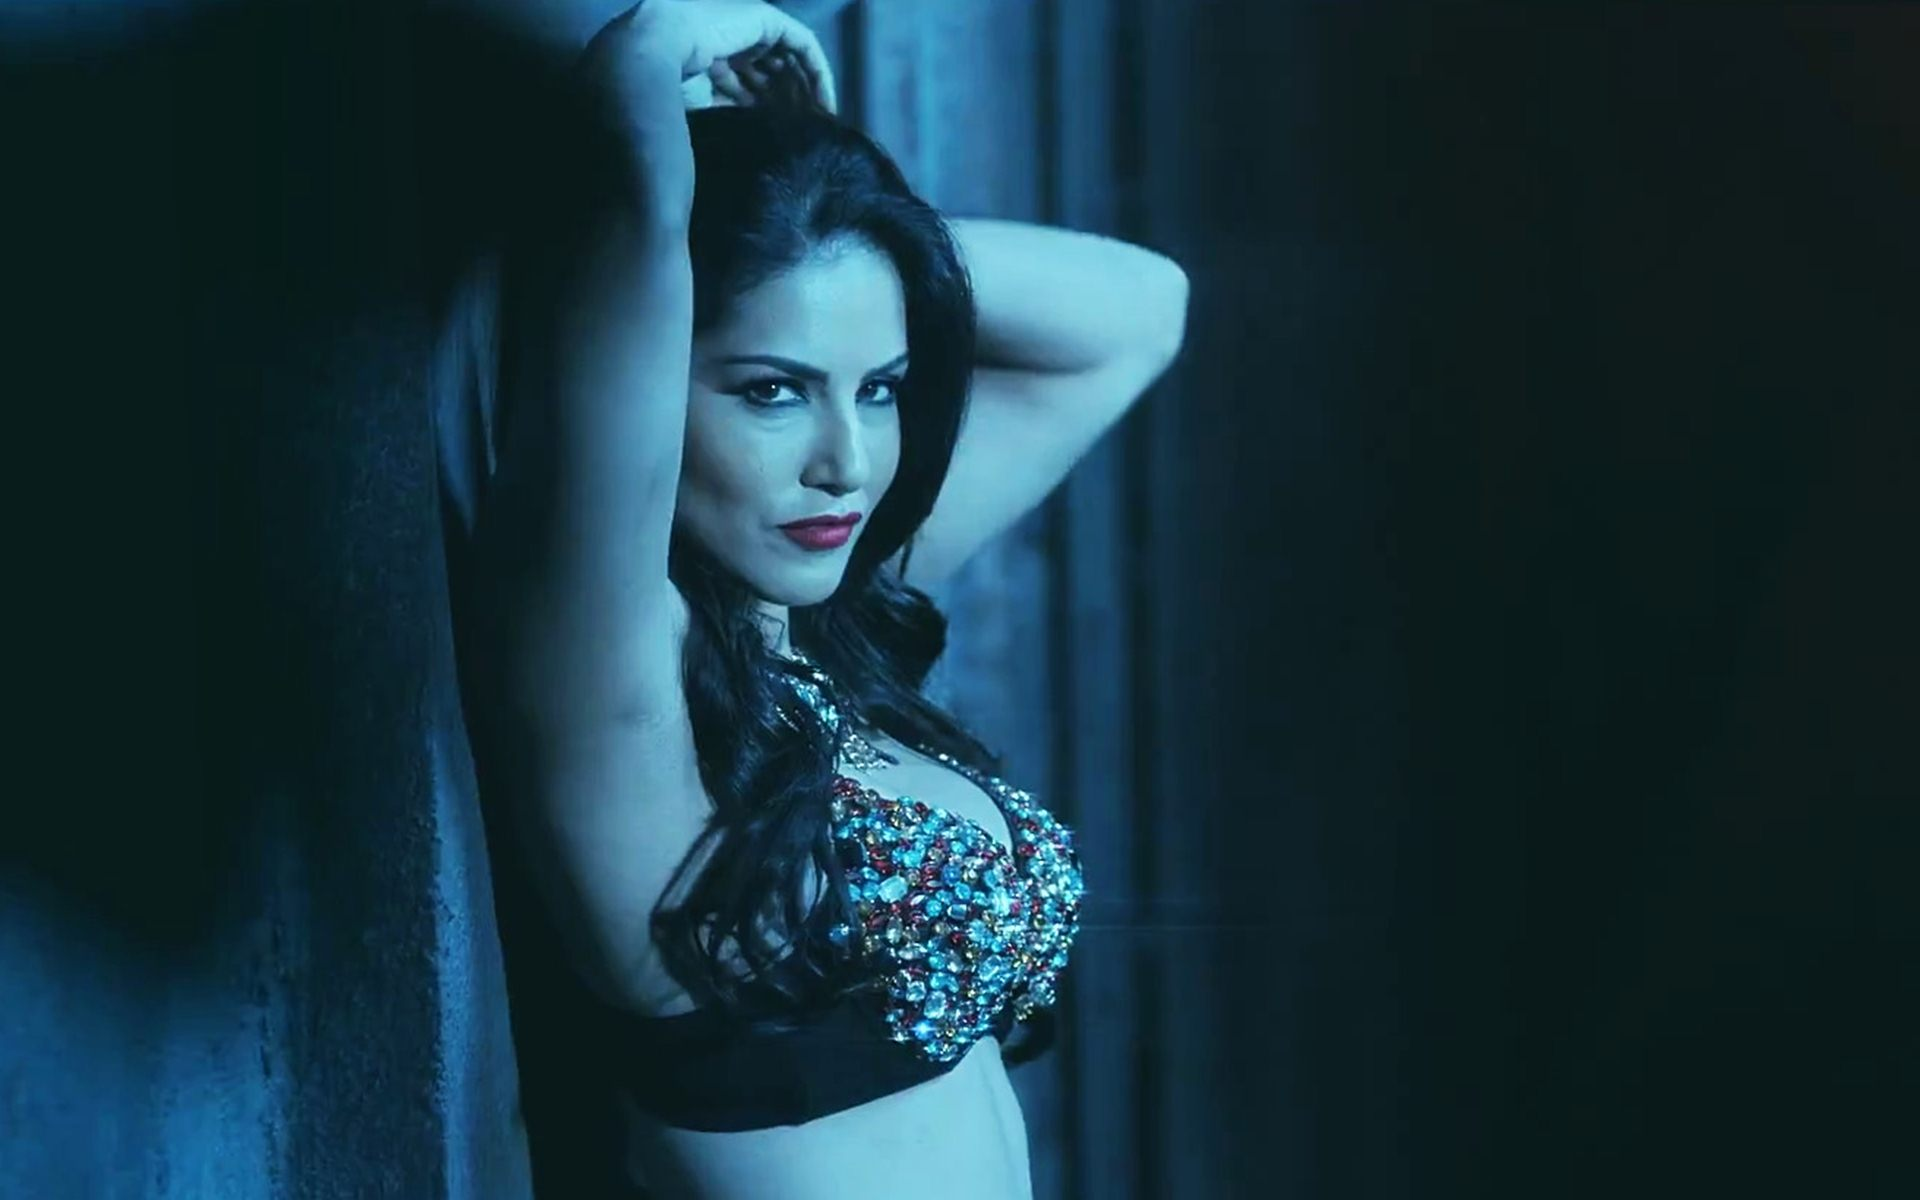 sunny leone wallpapers, pictures, images